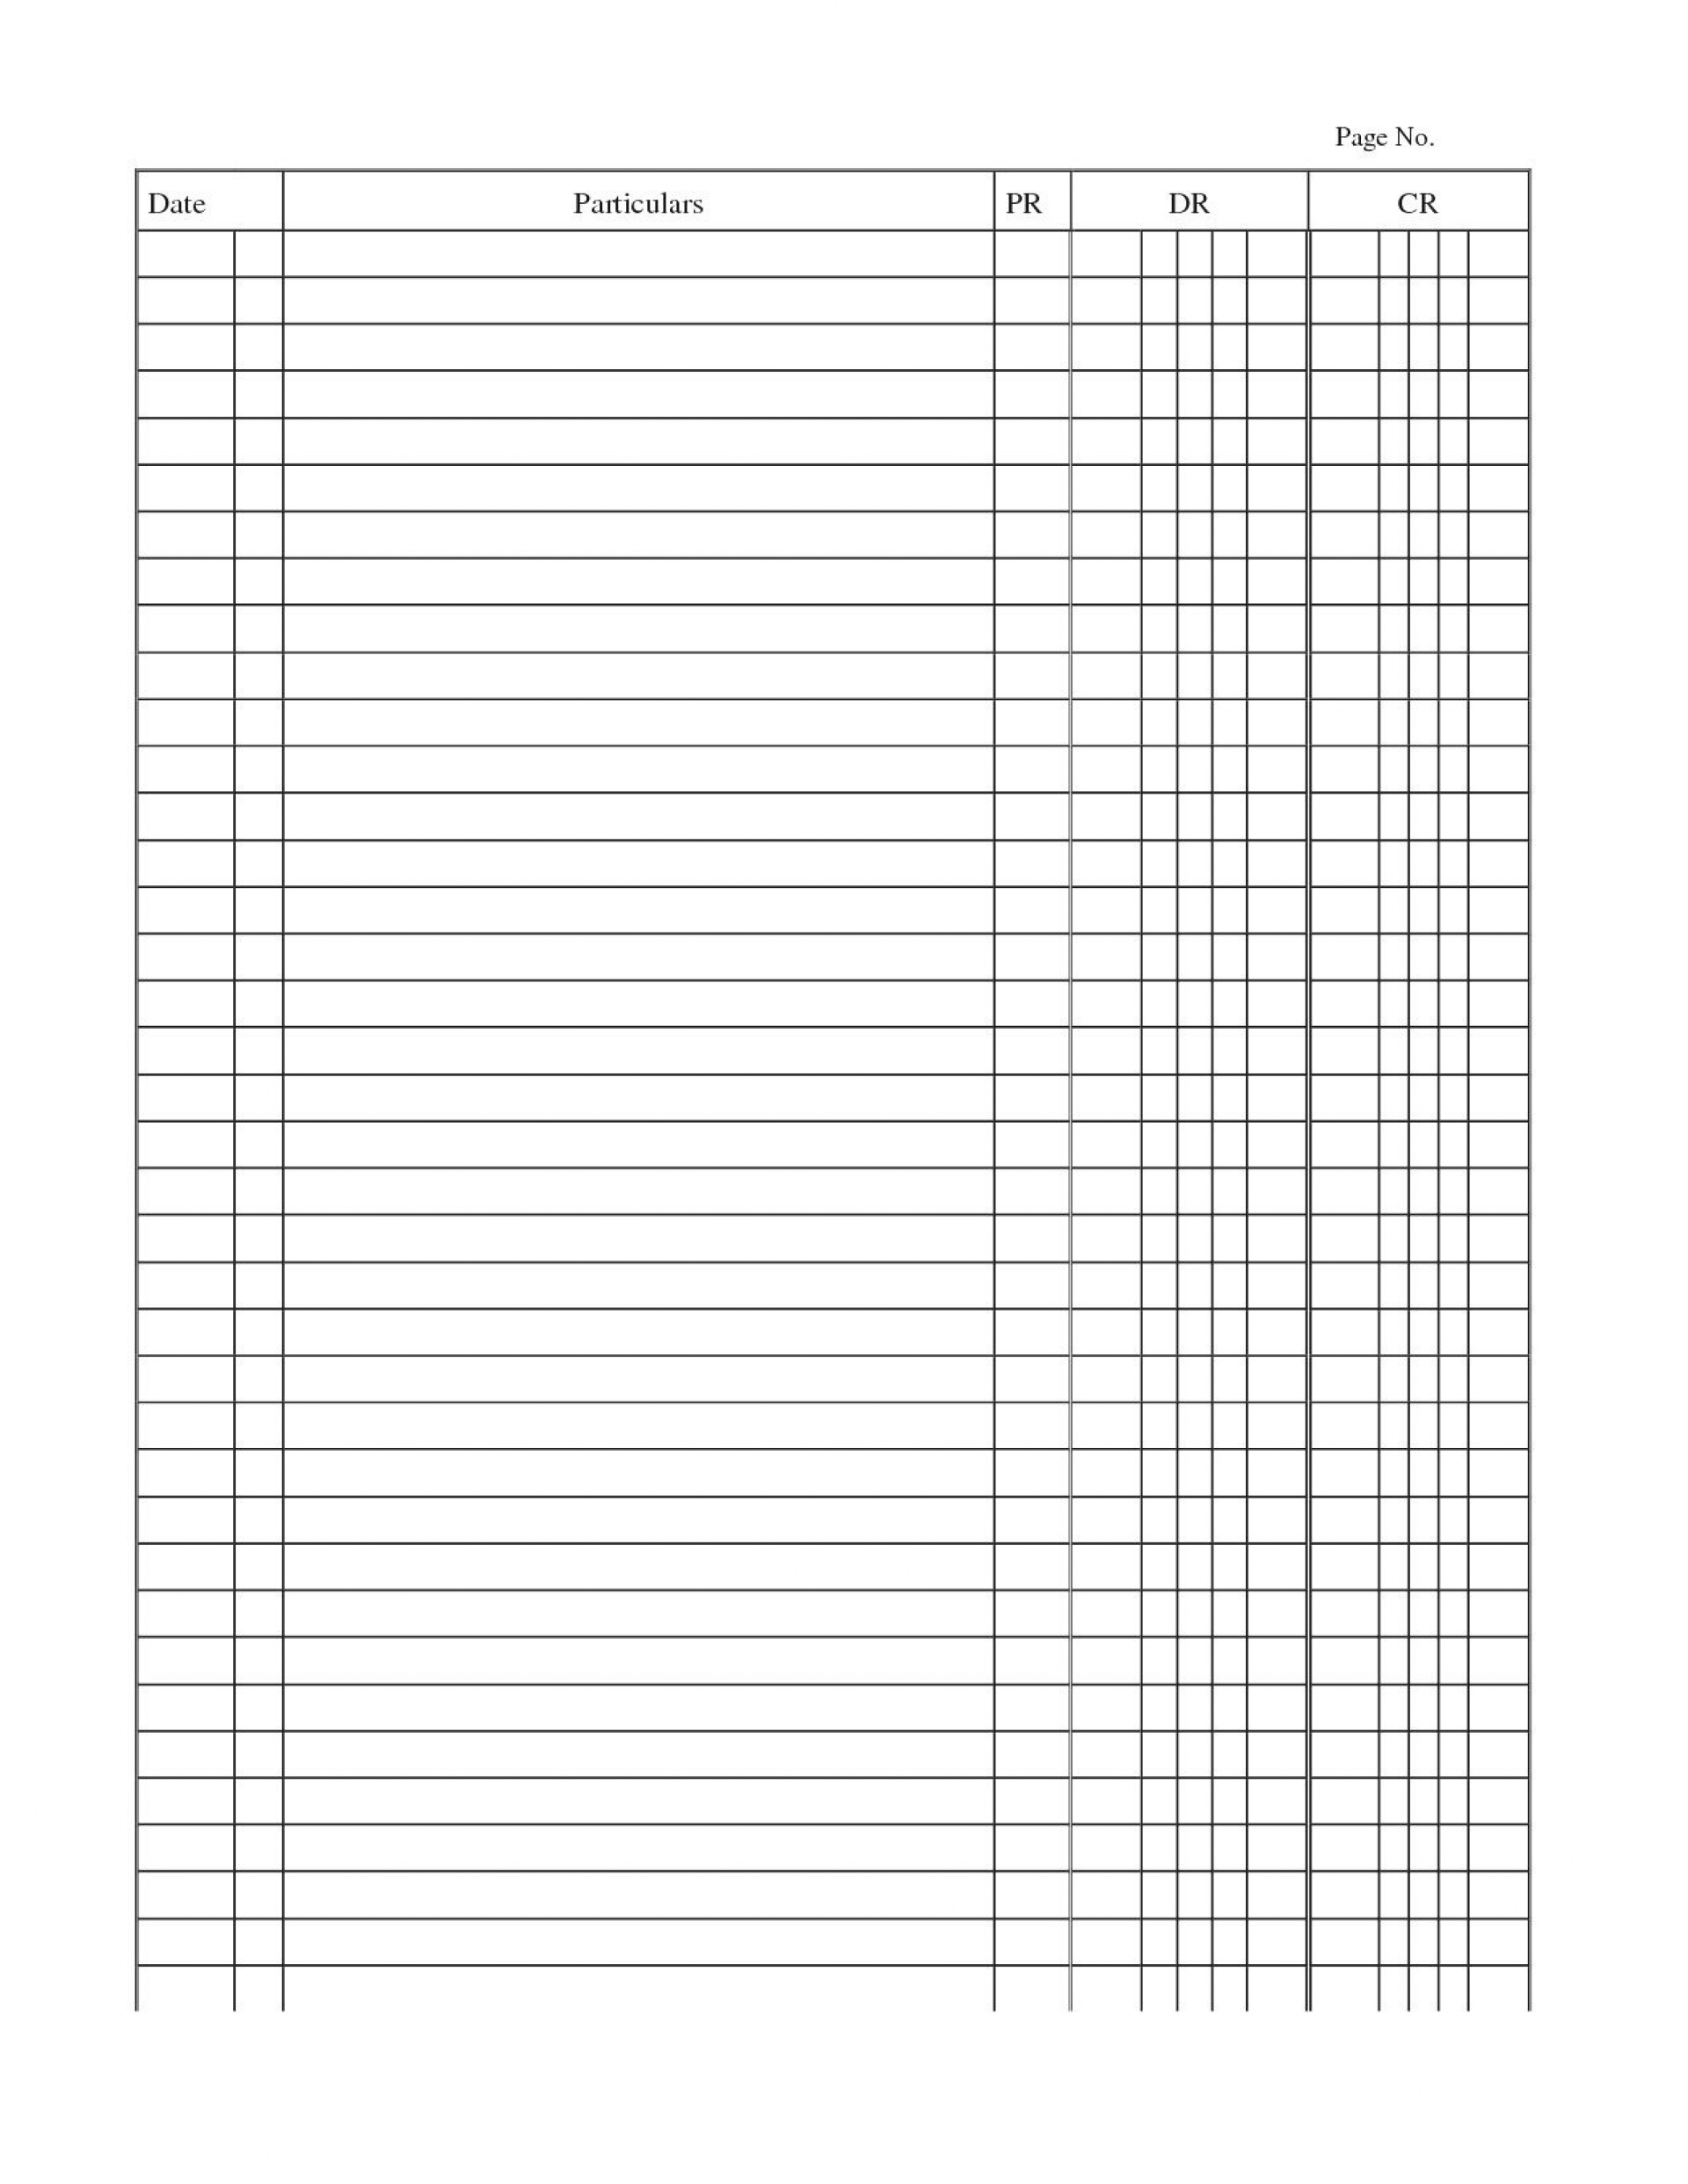 000 Impressive Accounting Journal Entry Template Highest Quality  Blank Download Free1920